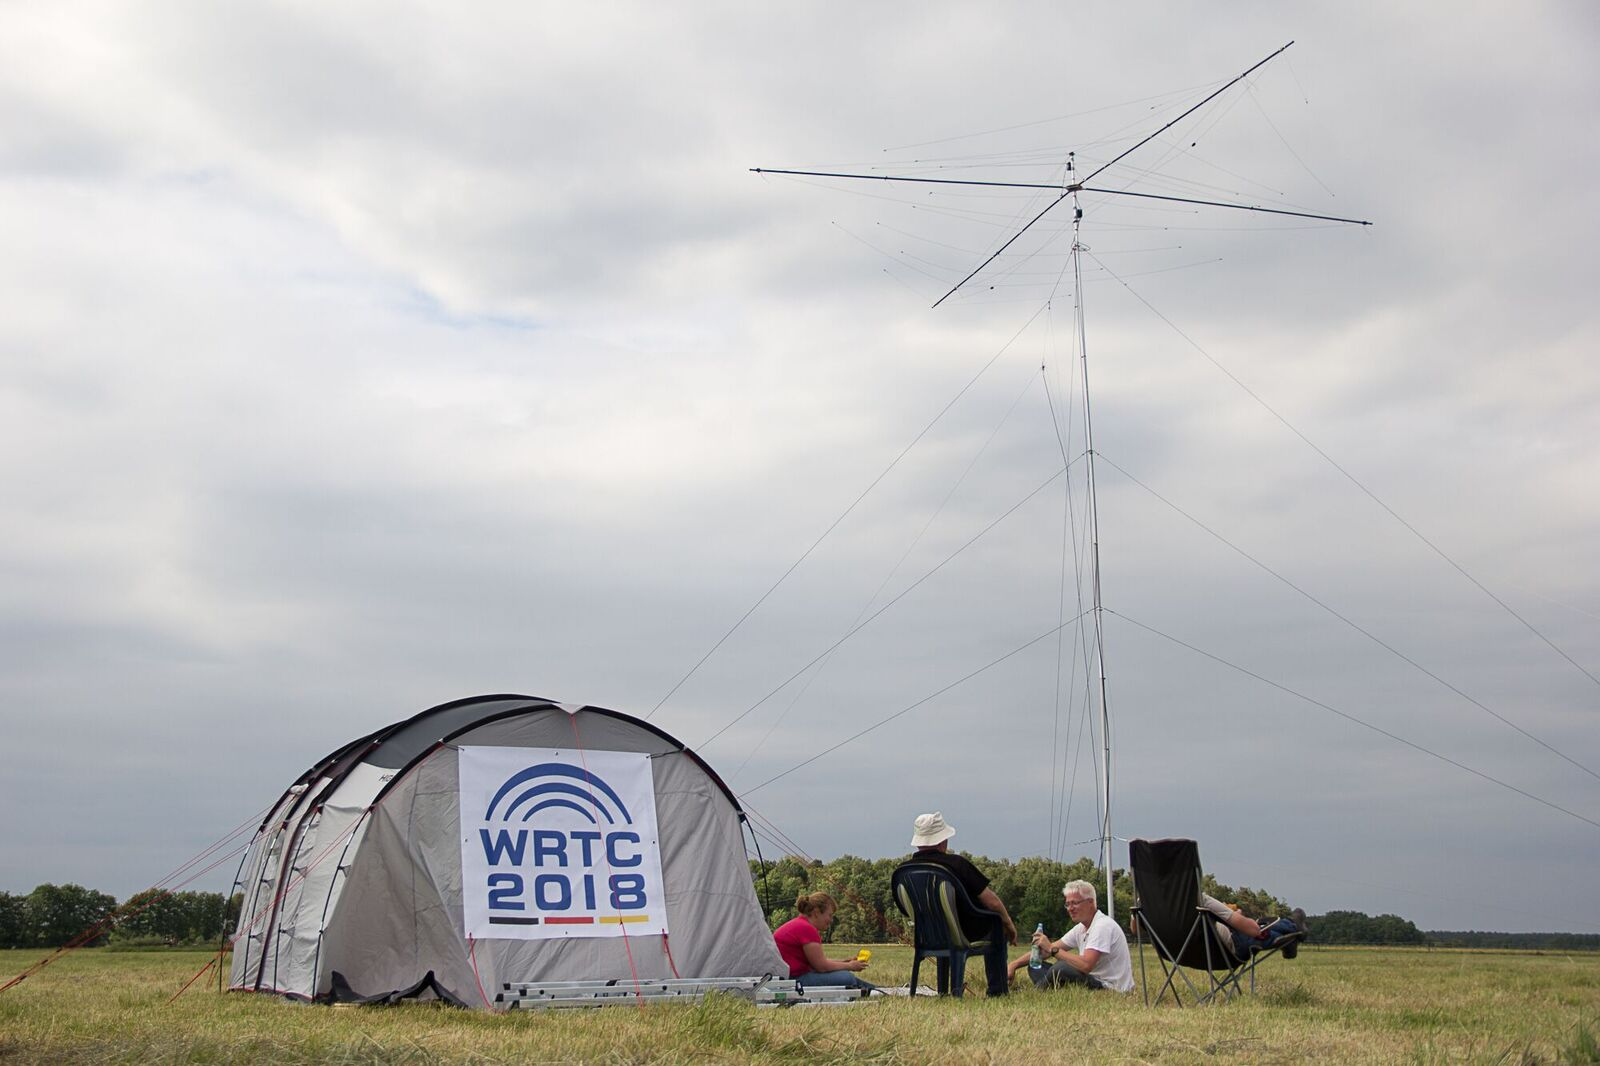 WRTC 2018 Conducts New Round of Testing at 15 Sites